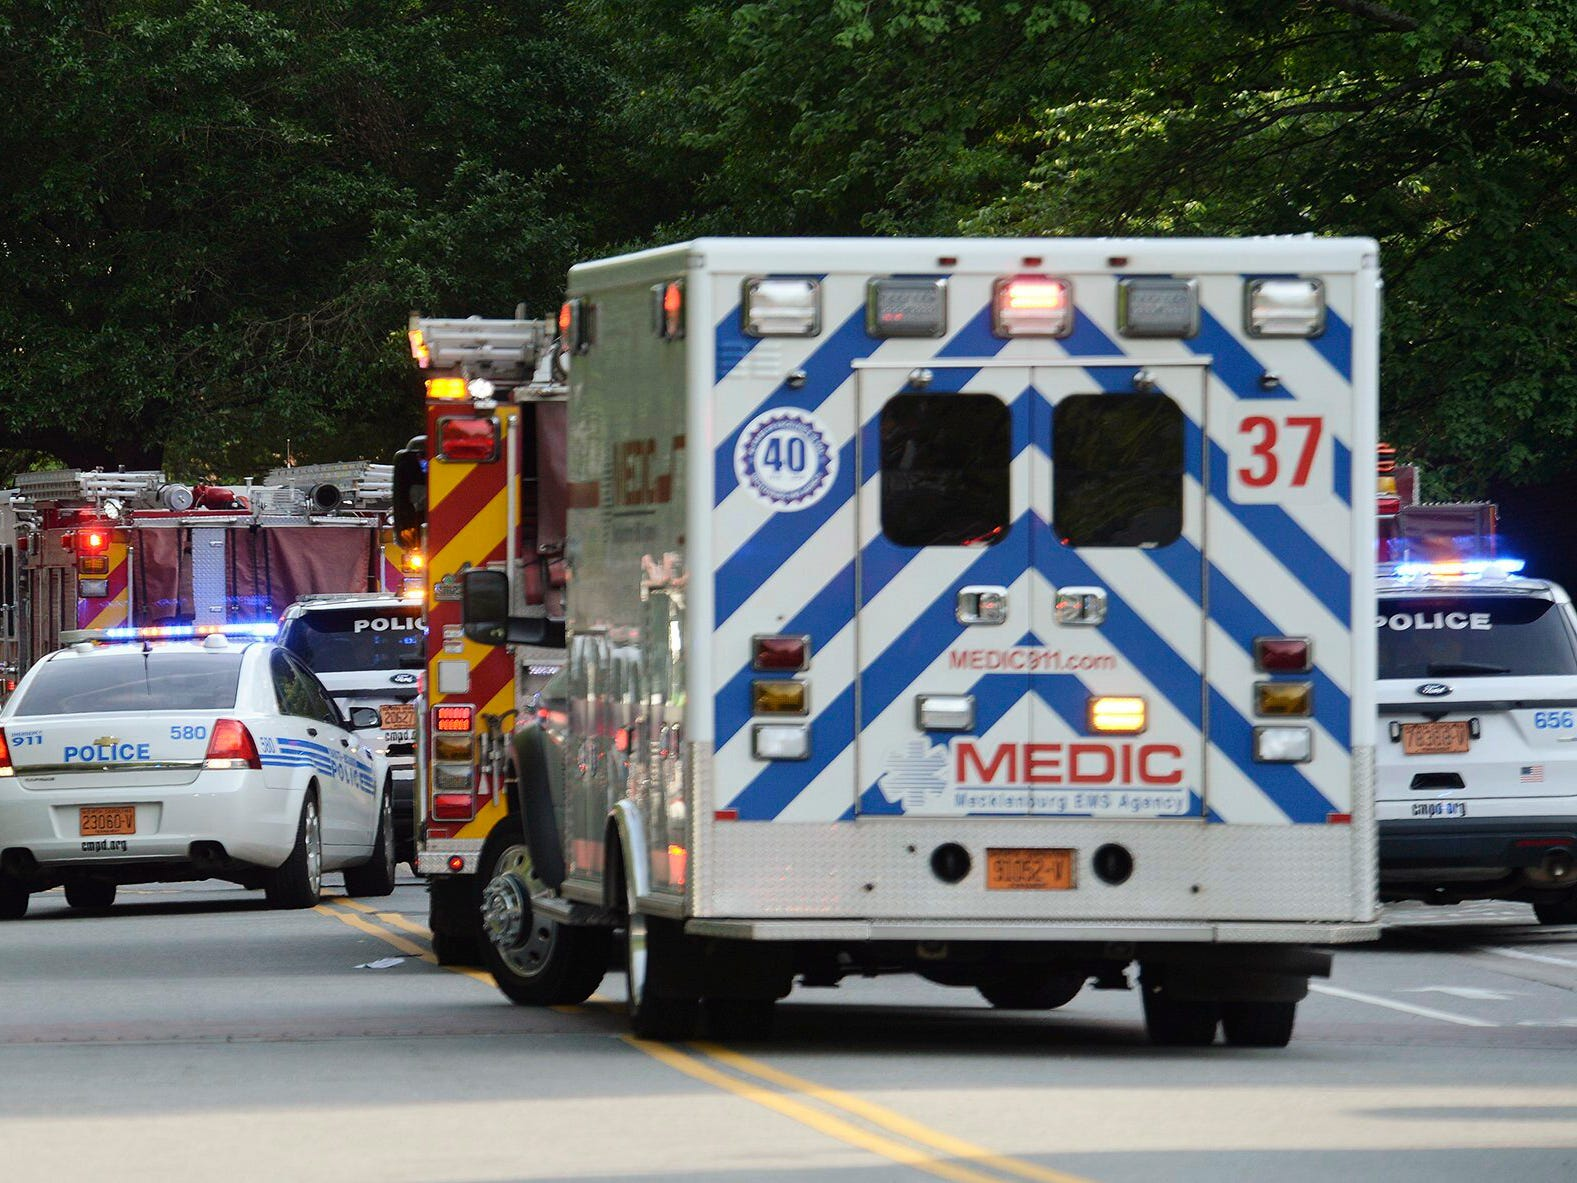 Emergency vehicles cluster on Mary Alexander Road on the campus of University of North Carolina at Charlotte after a shooting Tuesday, April 30, 2019, in Charlotte, N.C. The shooting on the campus left at least a few people dead and several wounded Tuesday, prompting a lockdown and chaotic scene in the state's largest city.